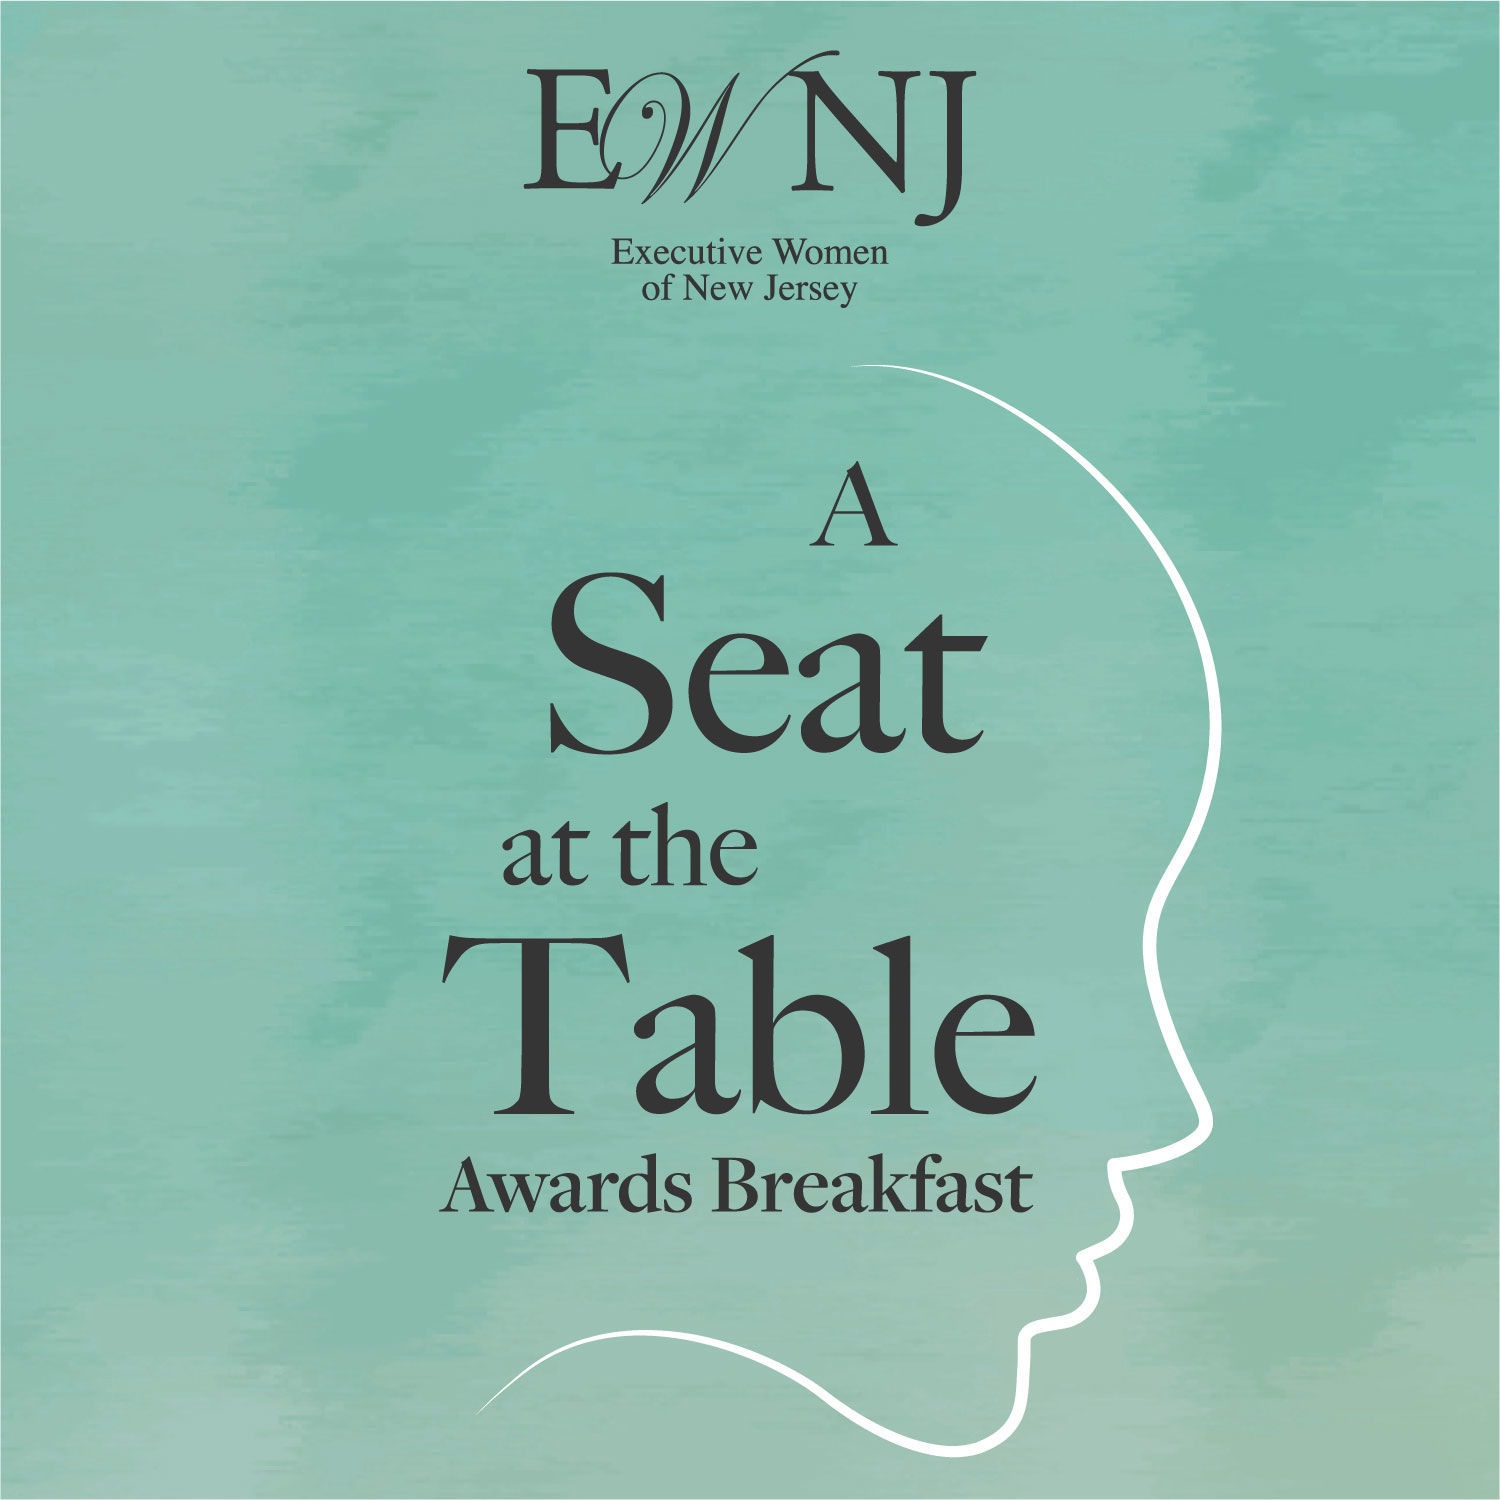 A Seat at the Table Corporate Gender Diversity Awards Breakfast